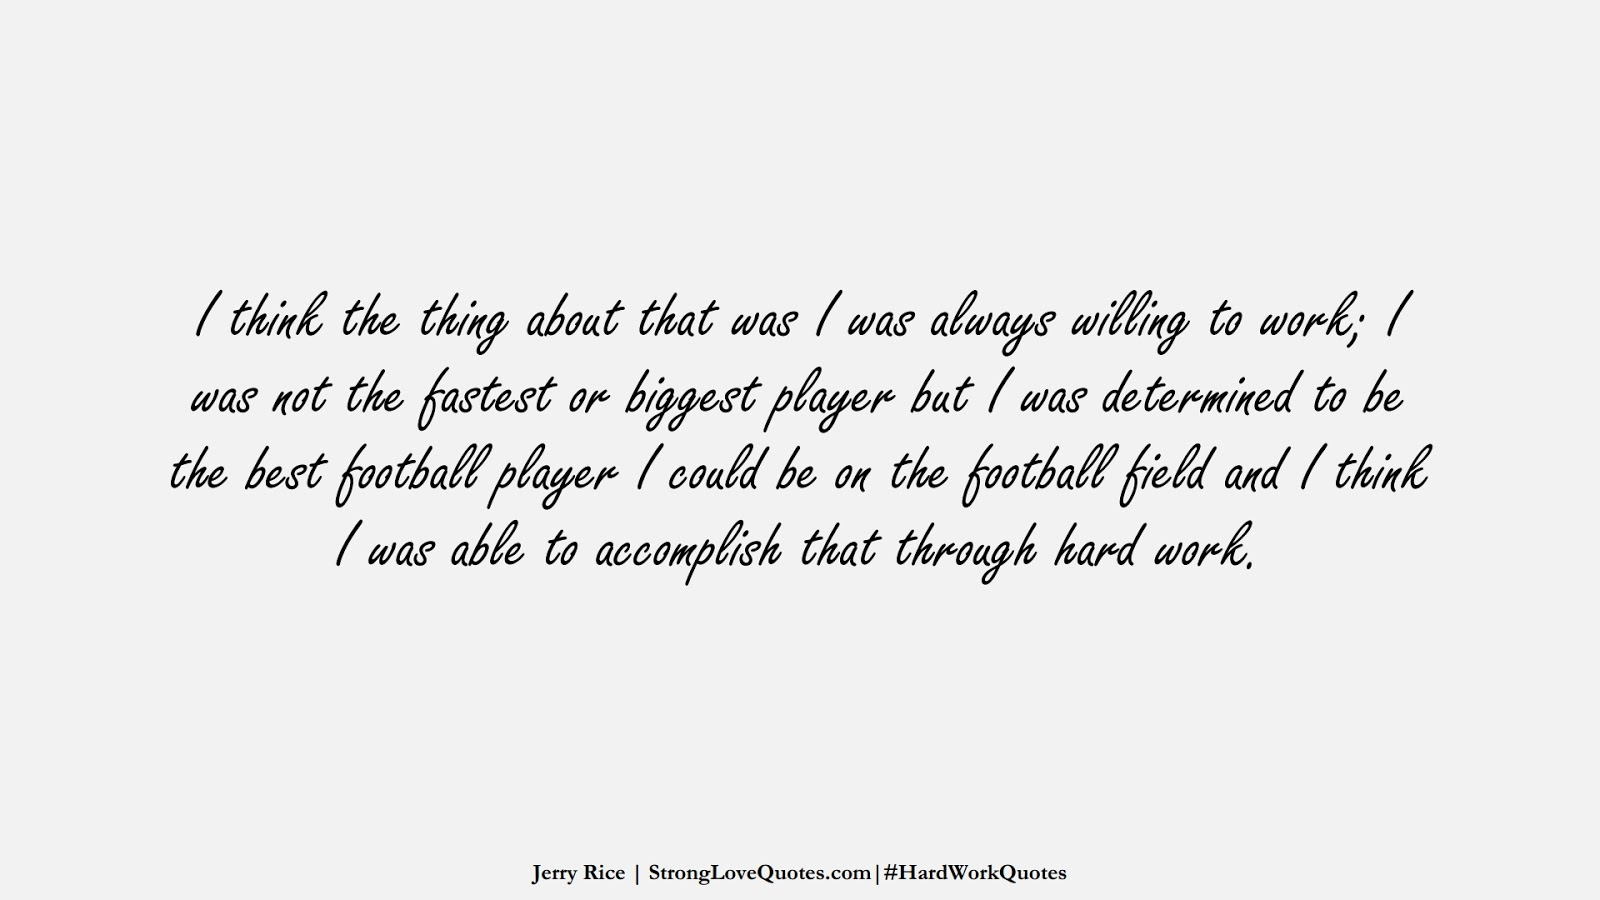 I think the thing about that was I was always willing to work; I was not the fastest or biggest player but I was determined to be the best football player I could be on the football field and I think I was able to accomplish that through hard work. (Jerry Rice);  #HardWorkQuotes